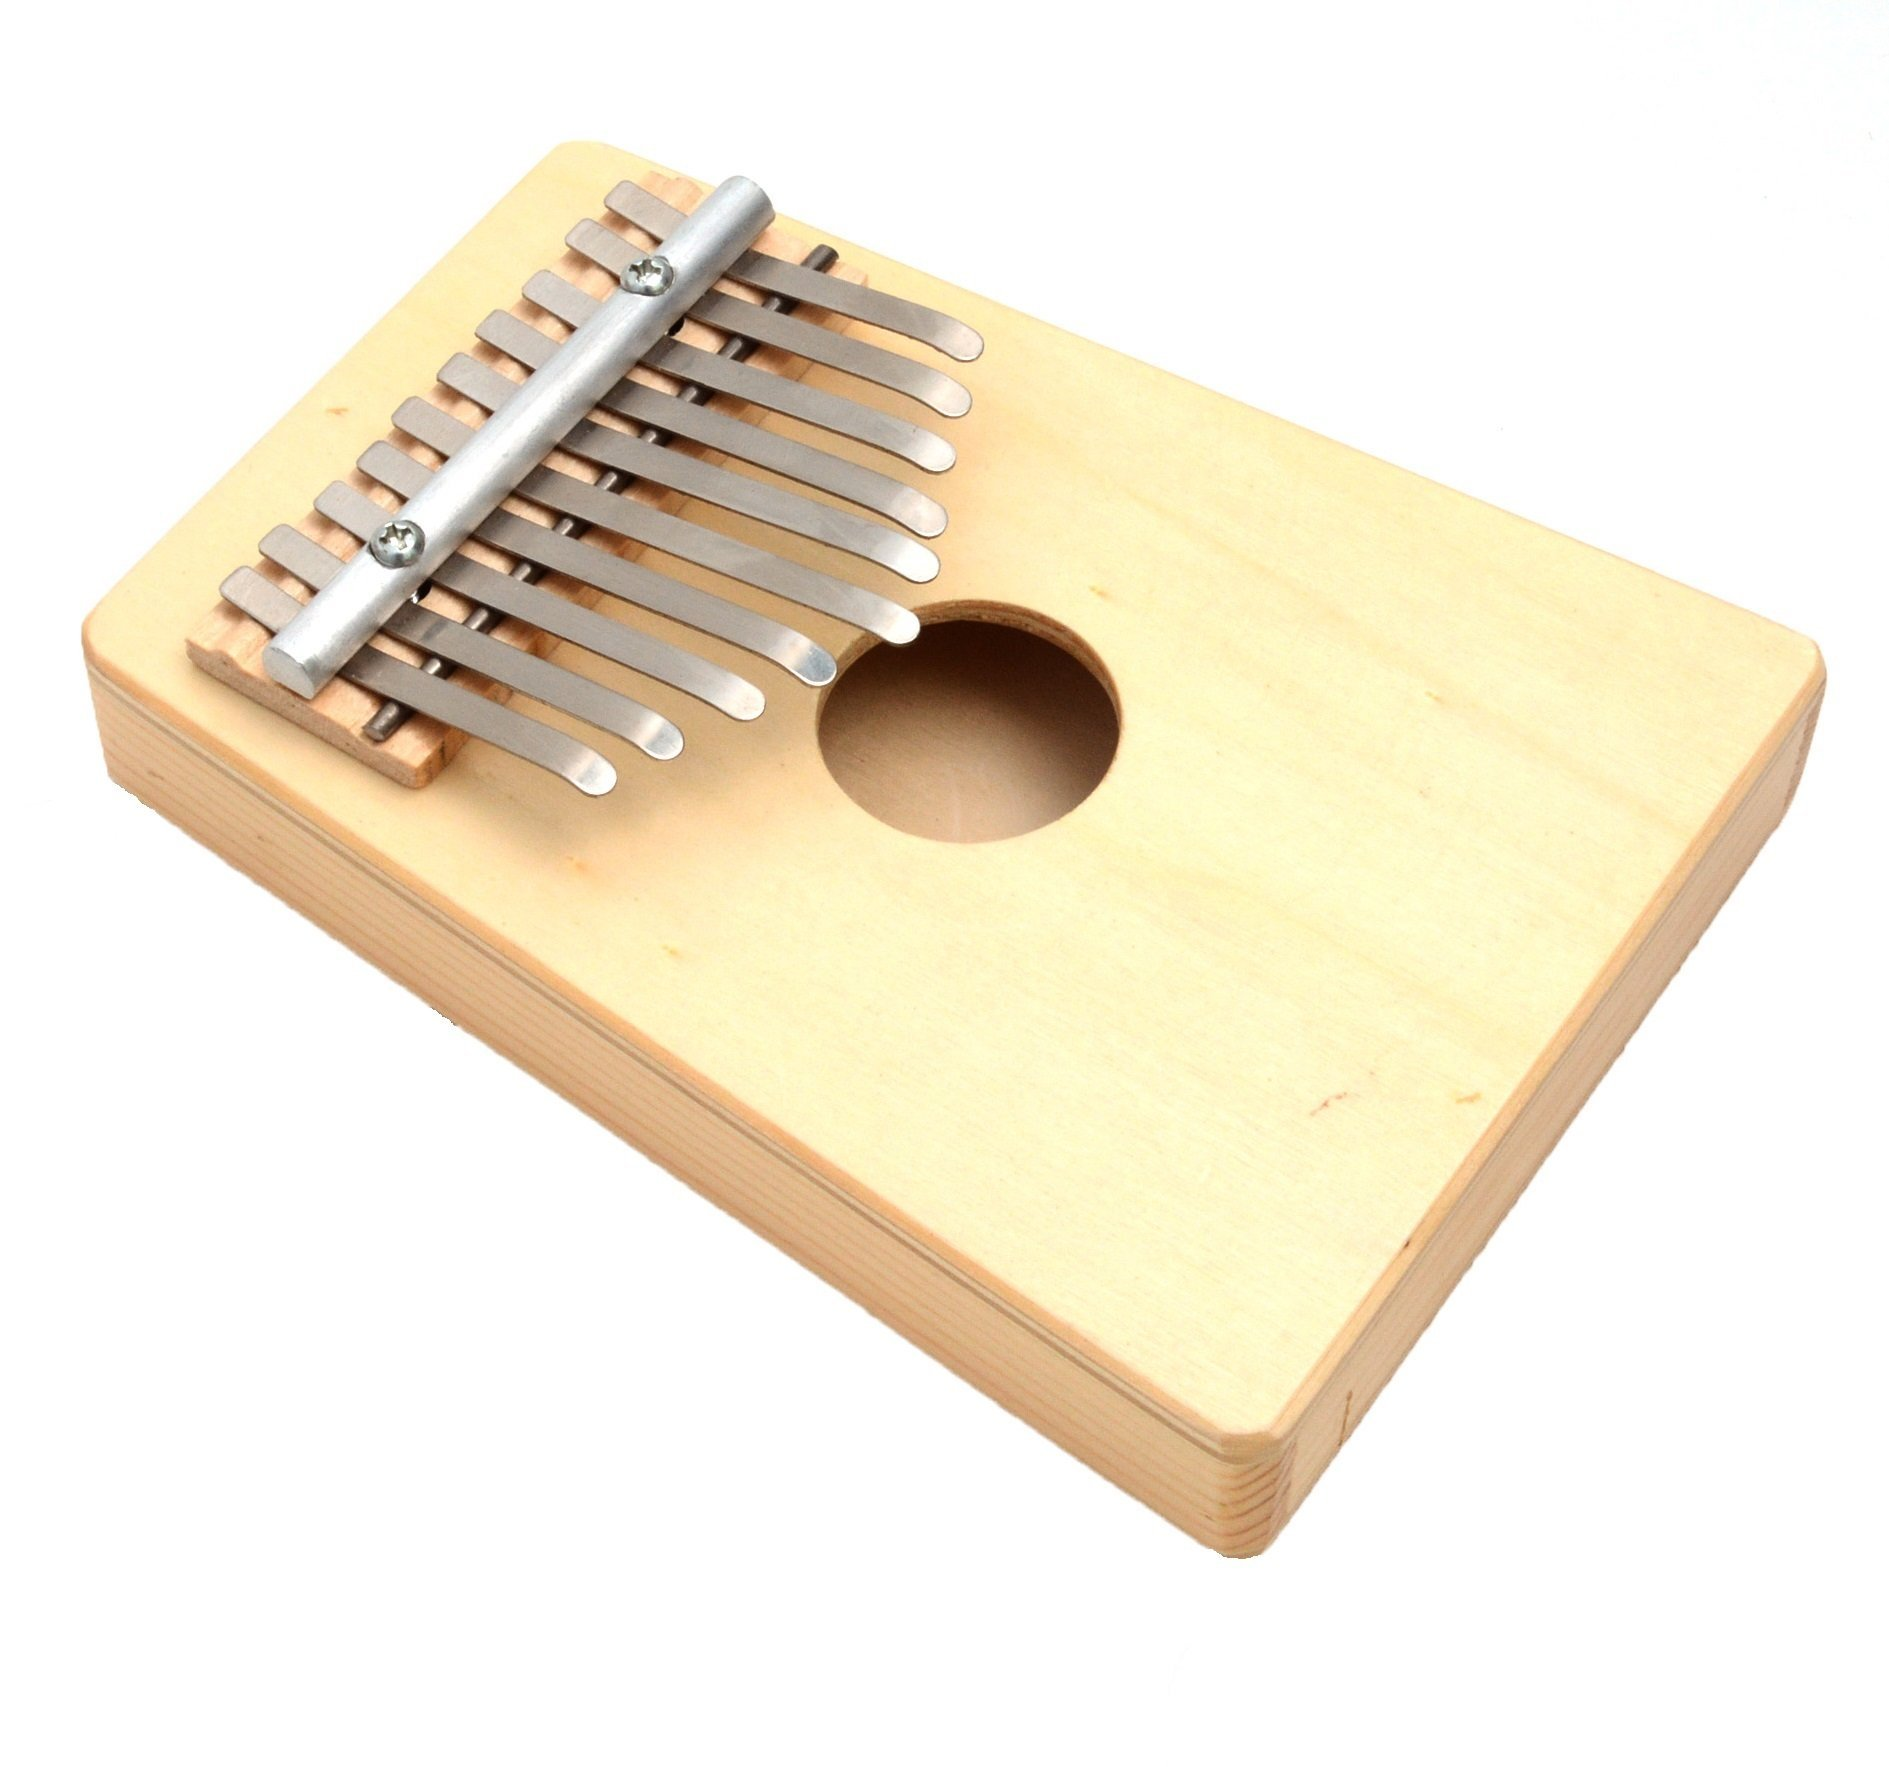 Thumb Piano Mbira Music Story Telling Instrument By Xgunion (Wood color)